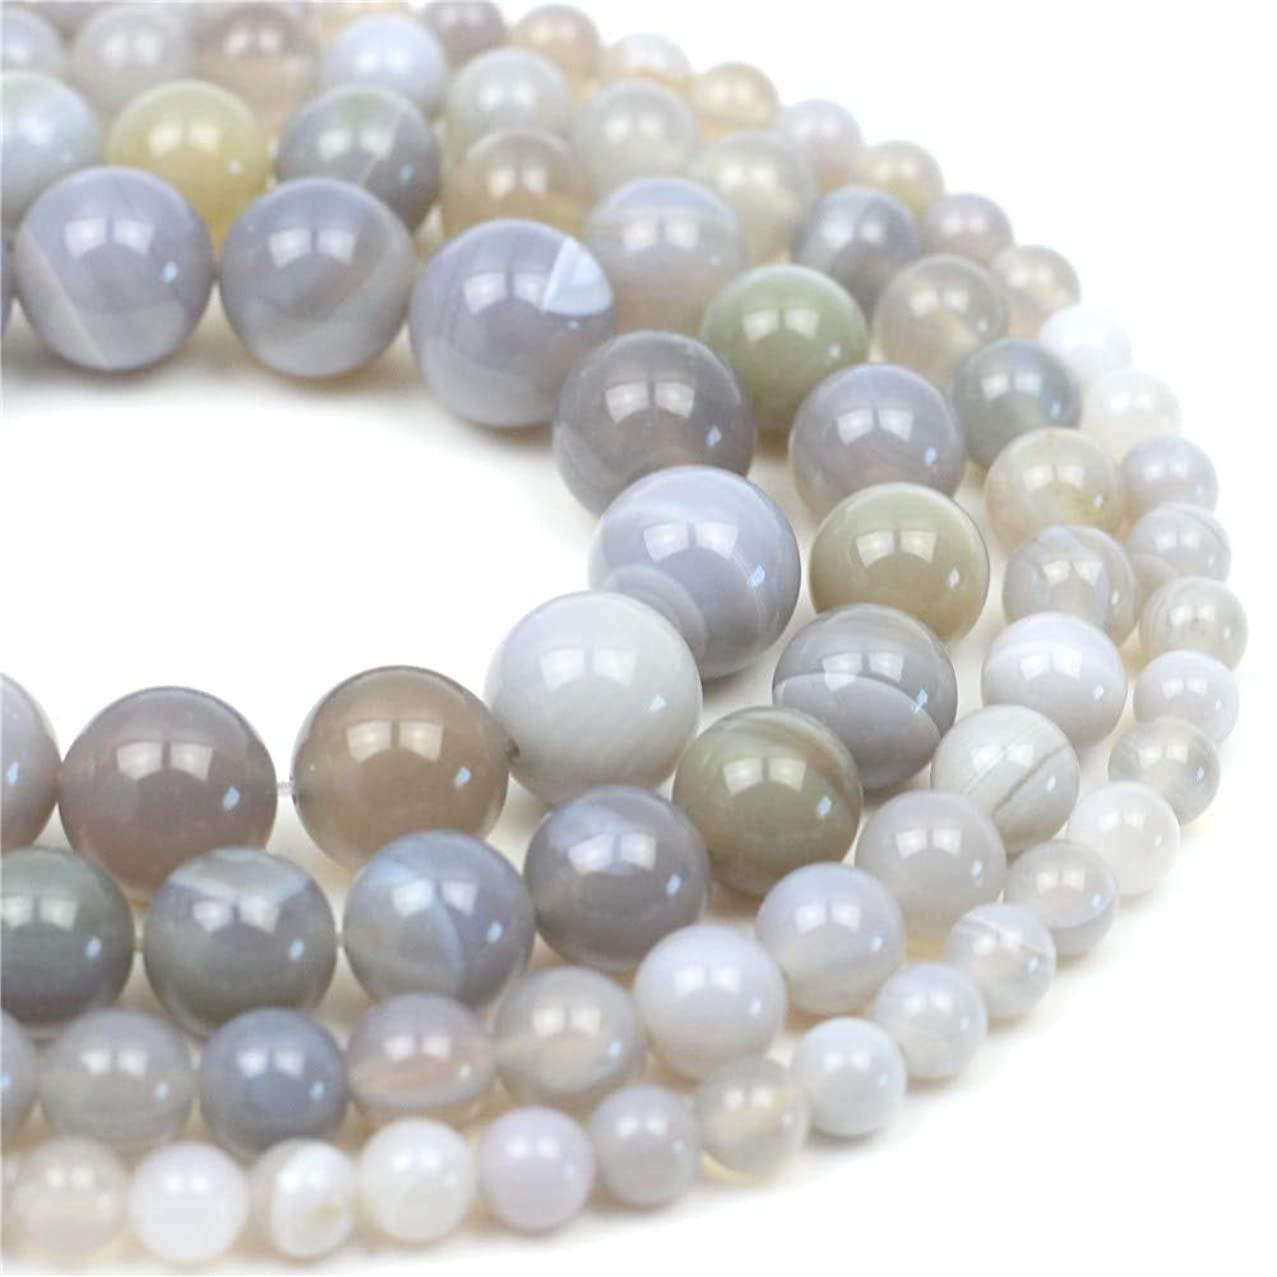 Oameusa Natural Round Smooth 8mm Gray Striped Agate Beads Gemstone Loose Beads Agate Beads for Jewelry Making 15